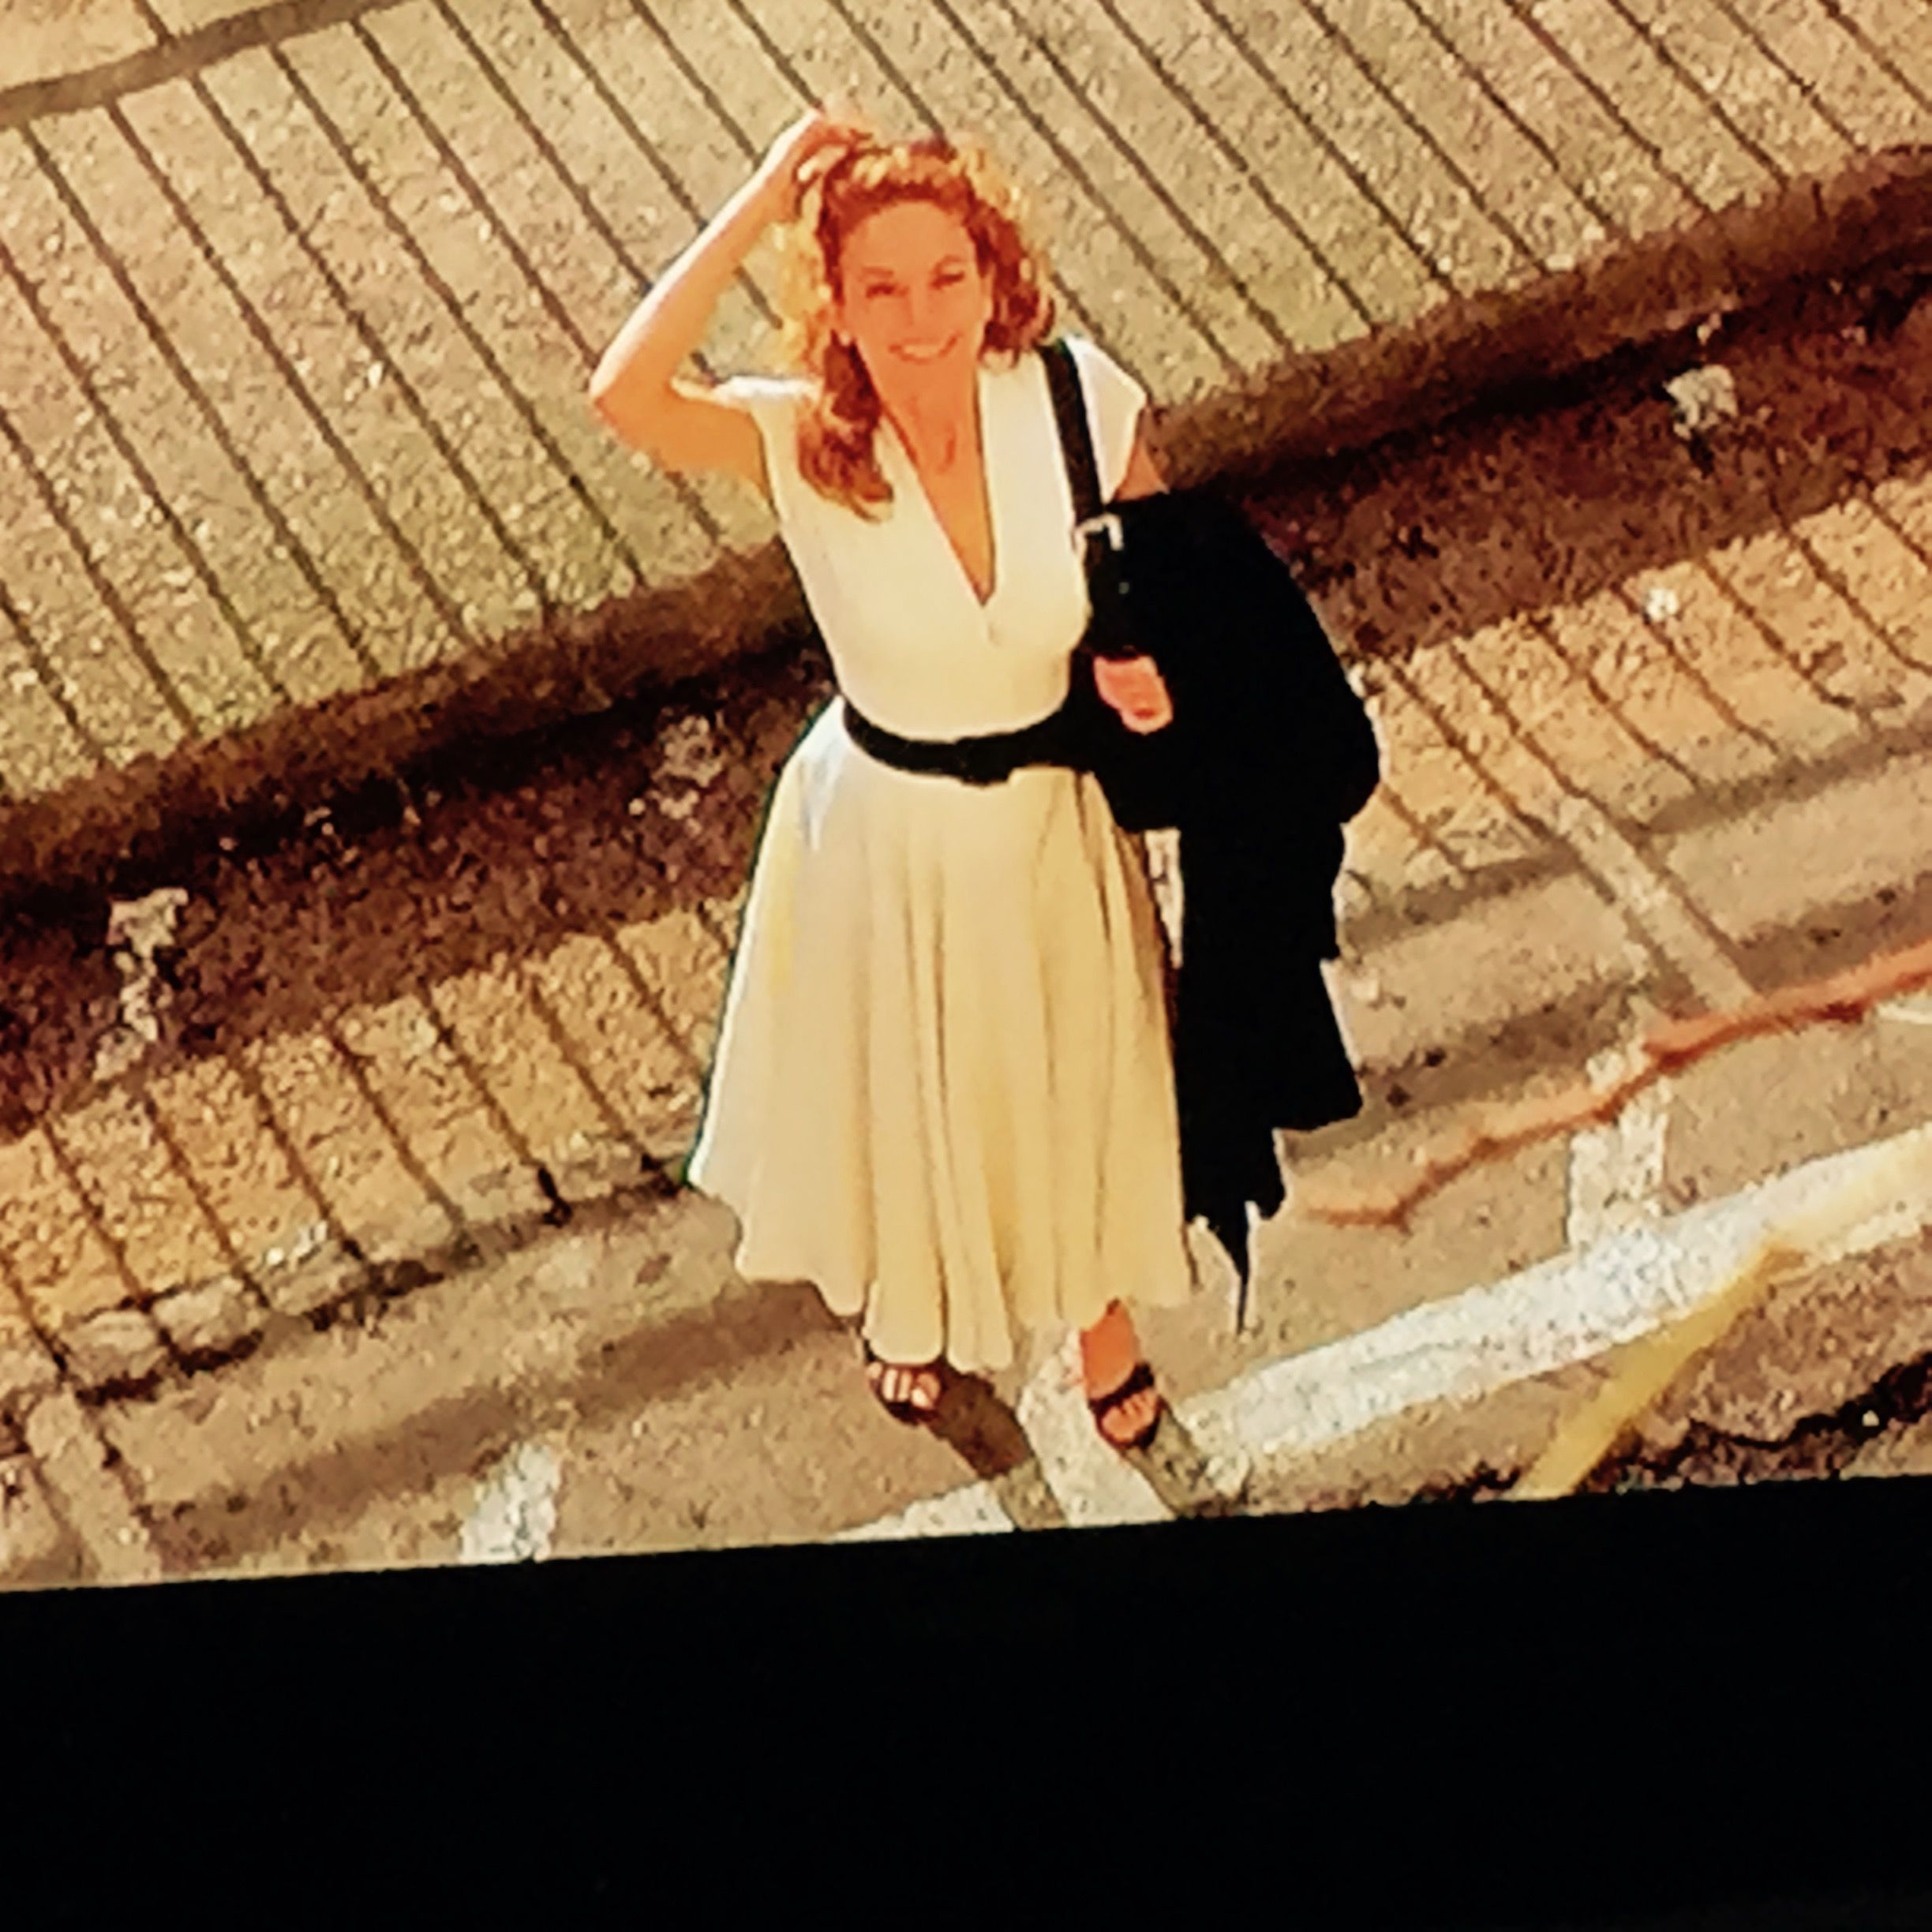 Iconic White Dress From Under The Tuscan Sun One Of My All Time Favorite